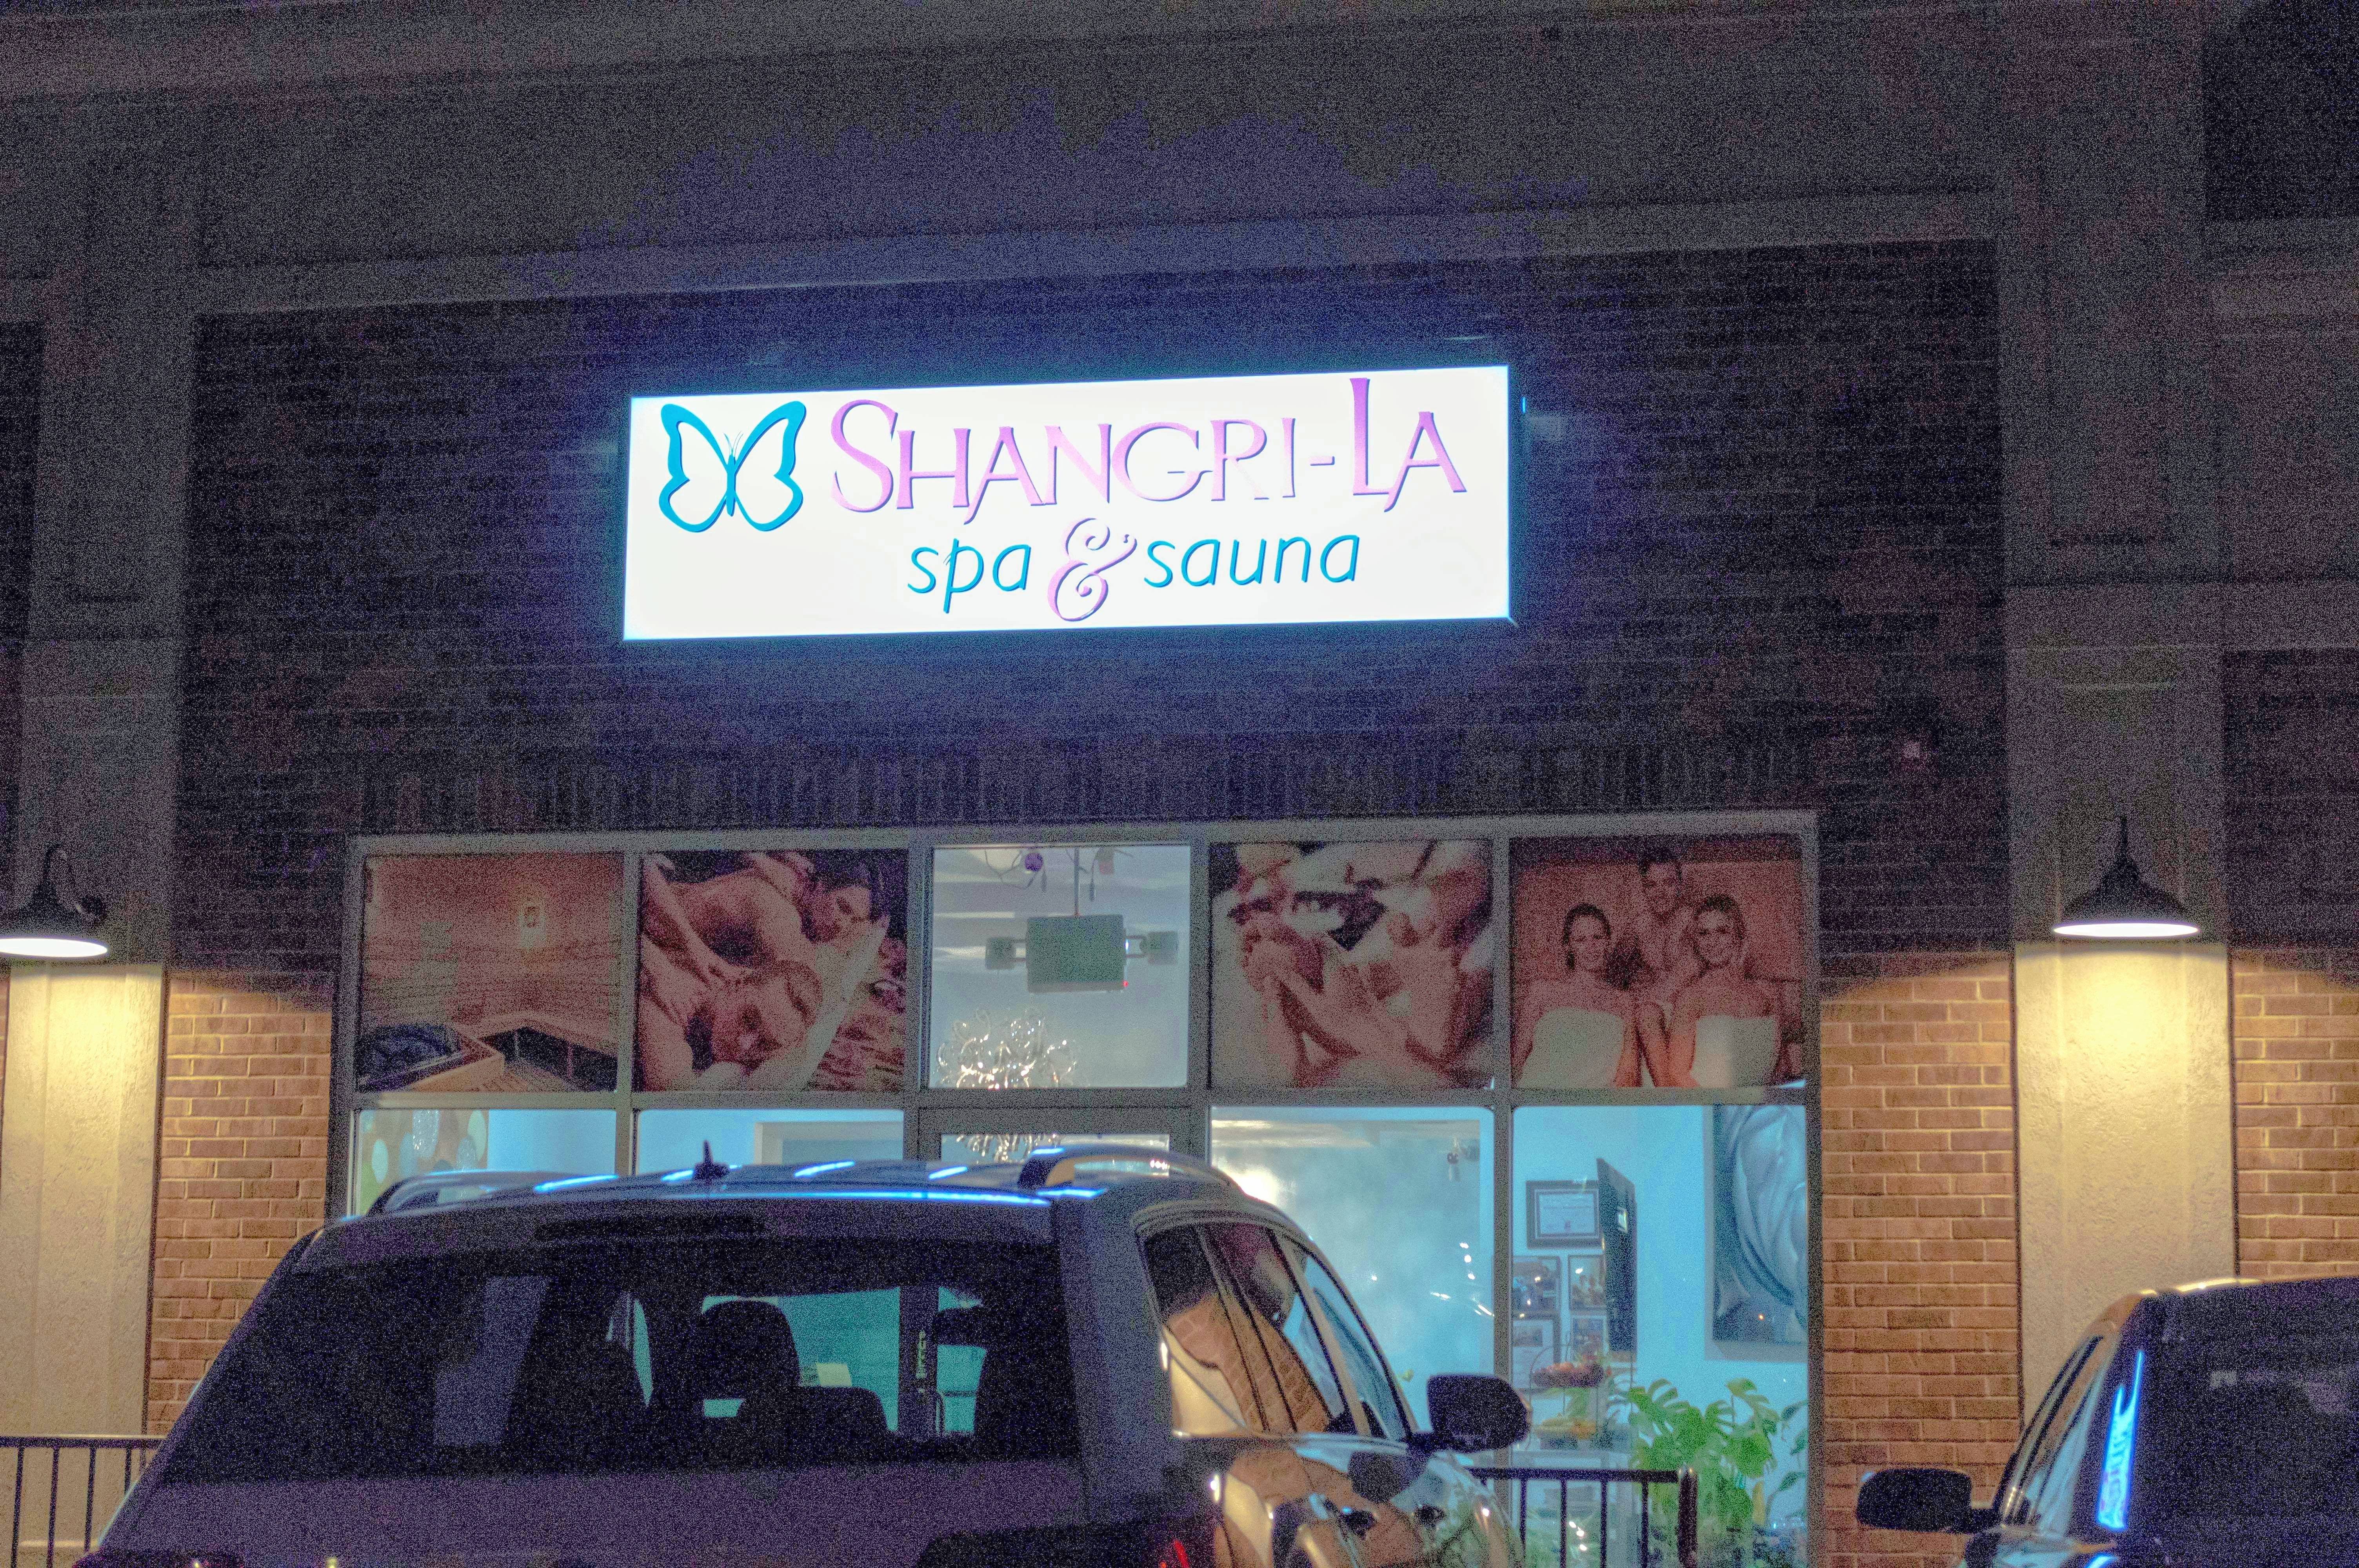 The Shangri-La Spa & Sauna could become the fifth St. Charles massage business to close because of prostitution allegations.